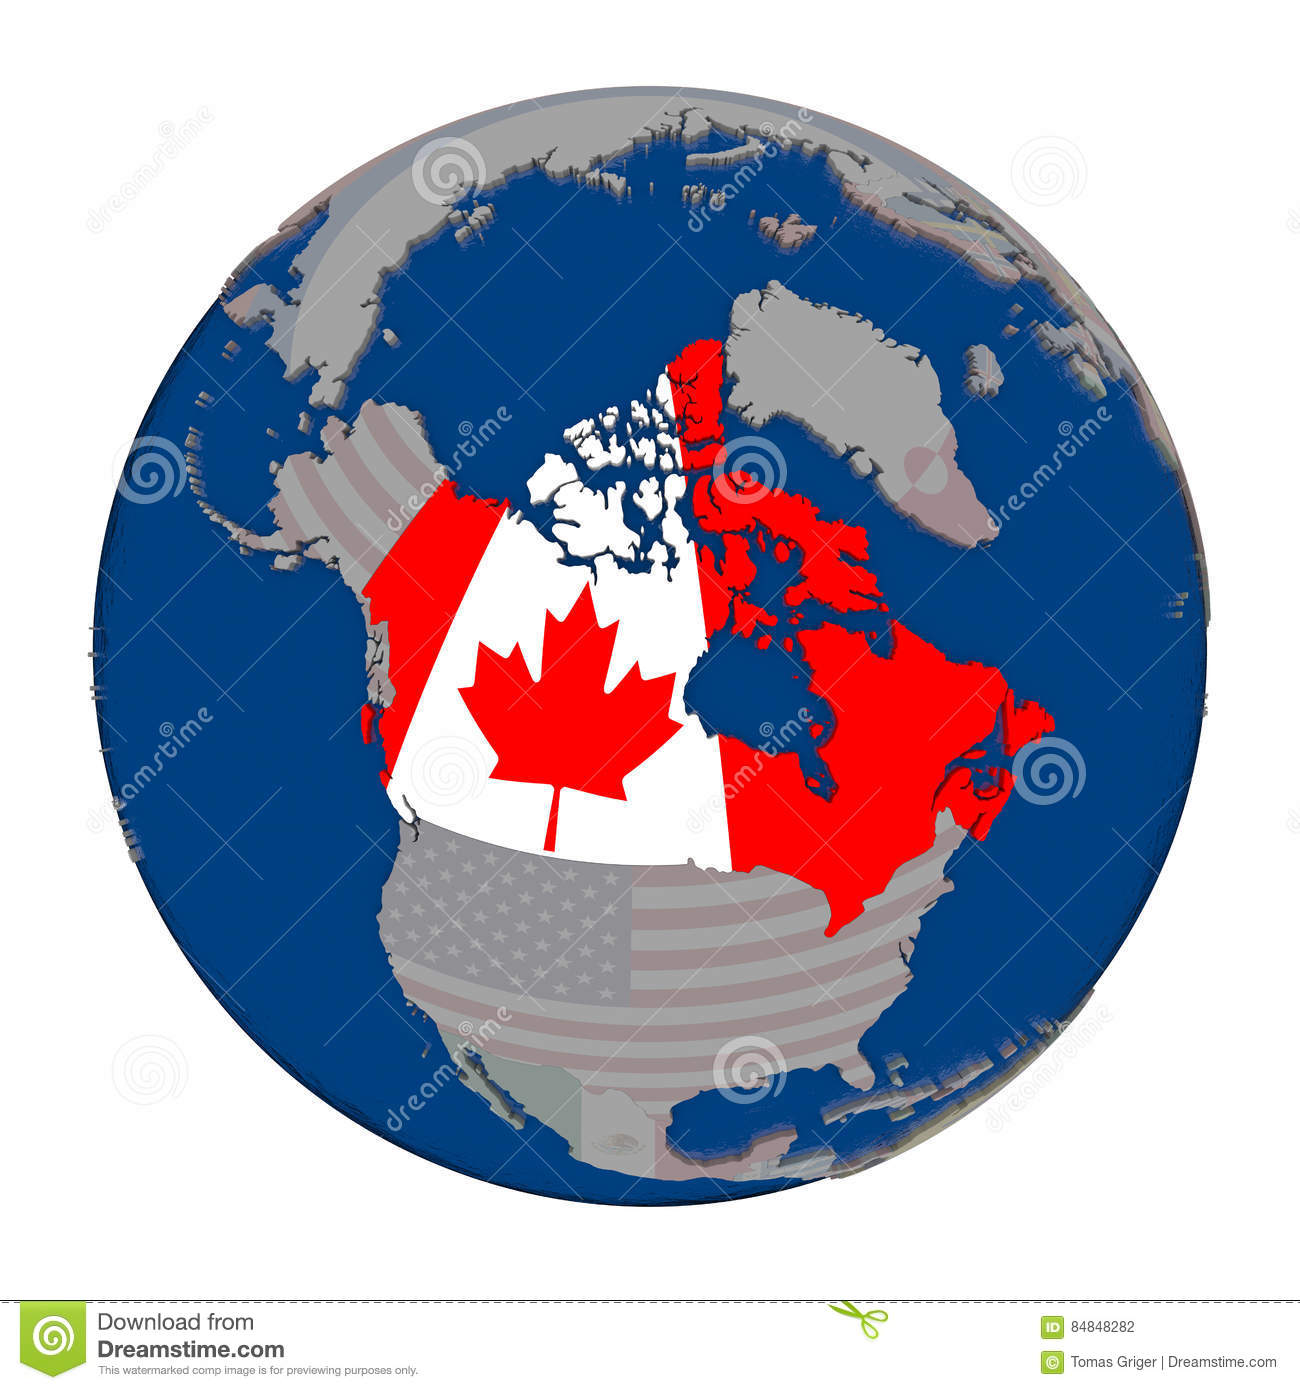 Map Of Canada On Globe.Canada On Political Globe Stock Illustration Illustration Of Full